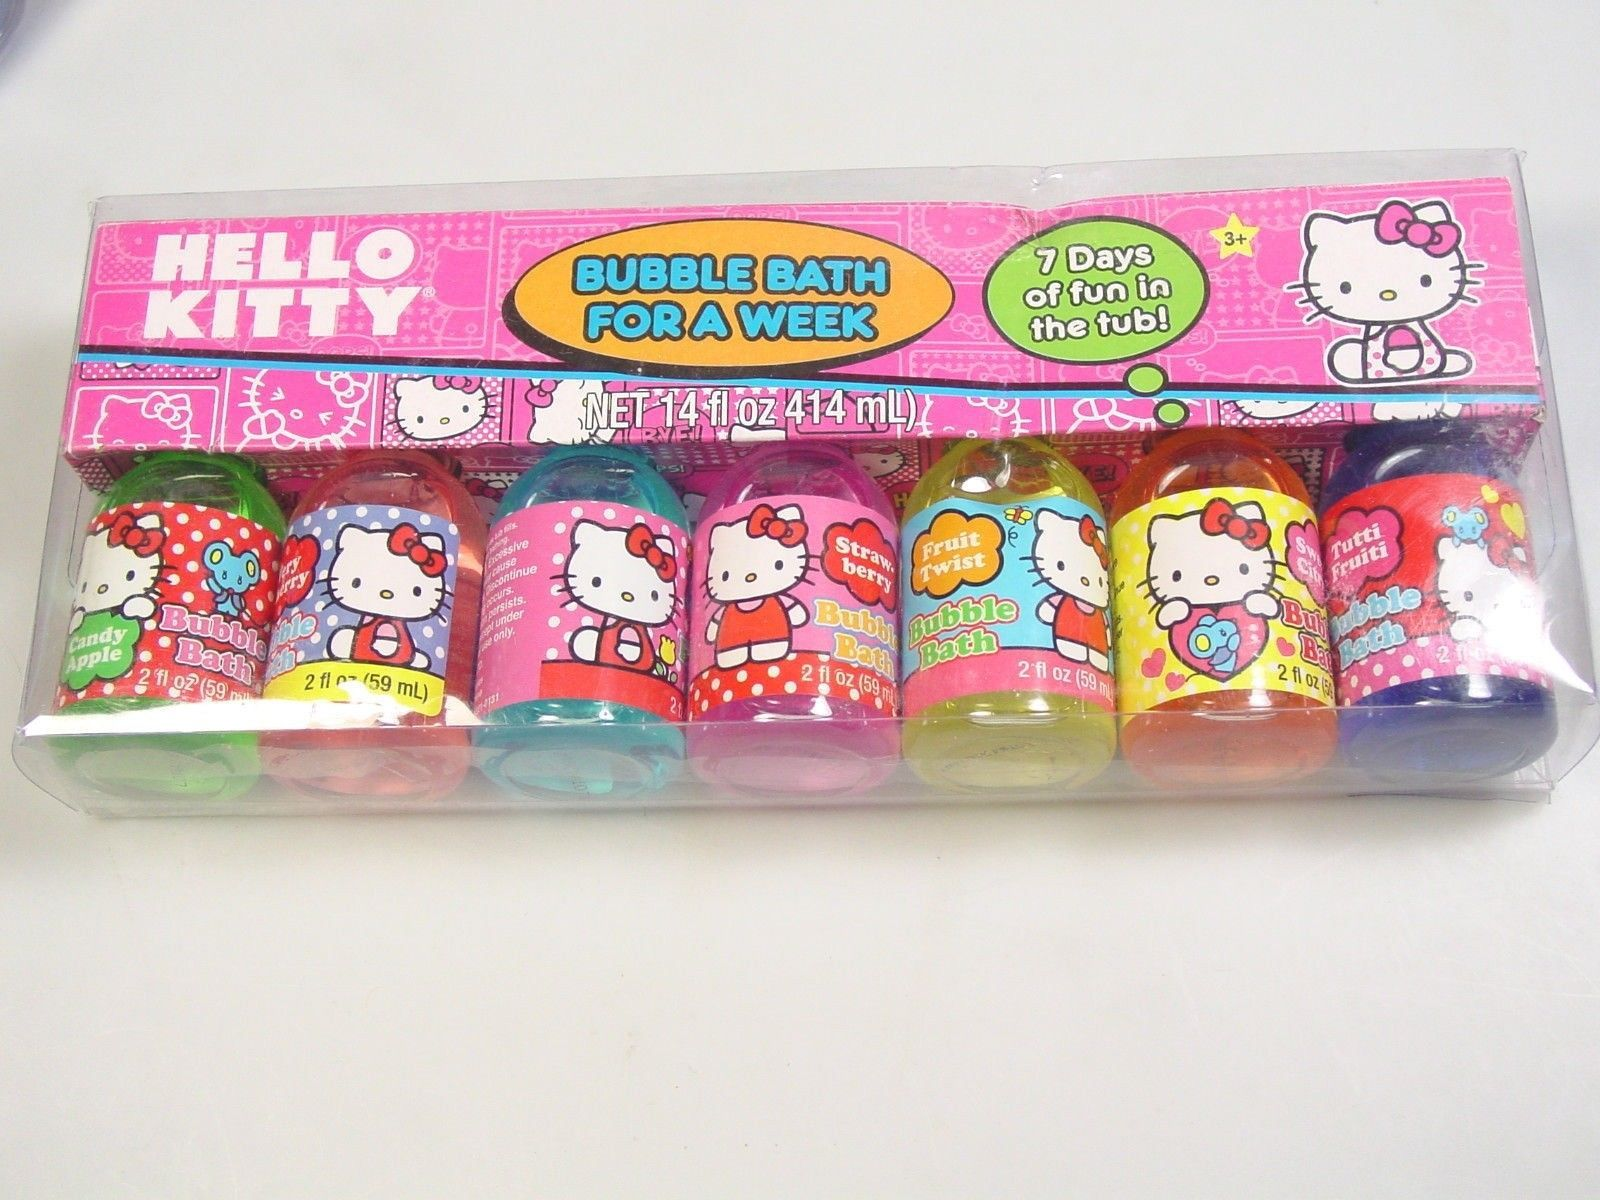 Hello Kitty Sanrio bubble Bath for a Week scented party favor good bag gift